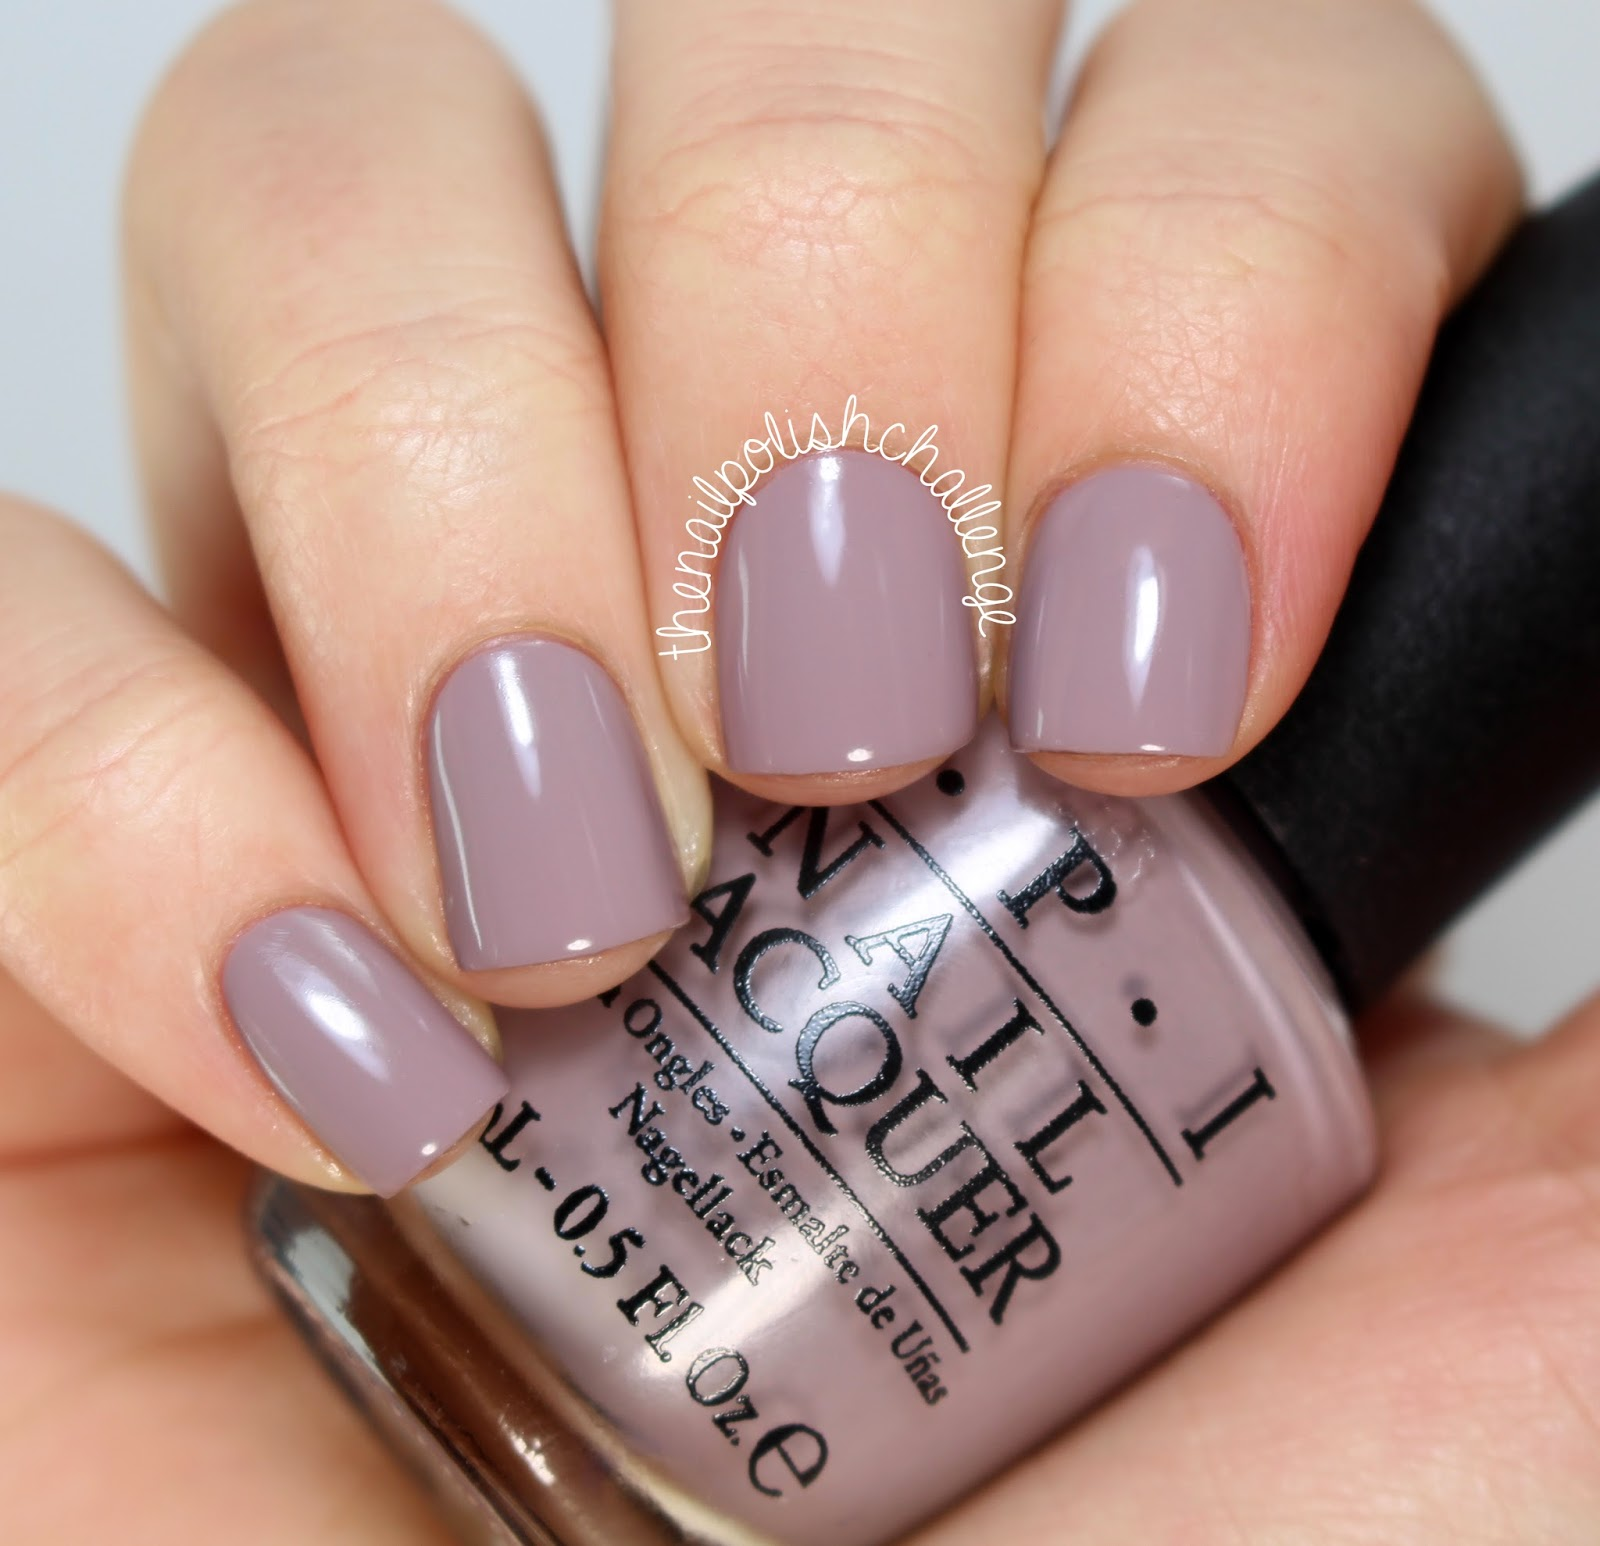 Kelli Marissa: HB Beauty Bar: OPI Brazil 2014 Collection Swatches